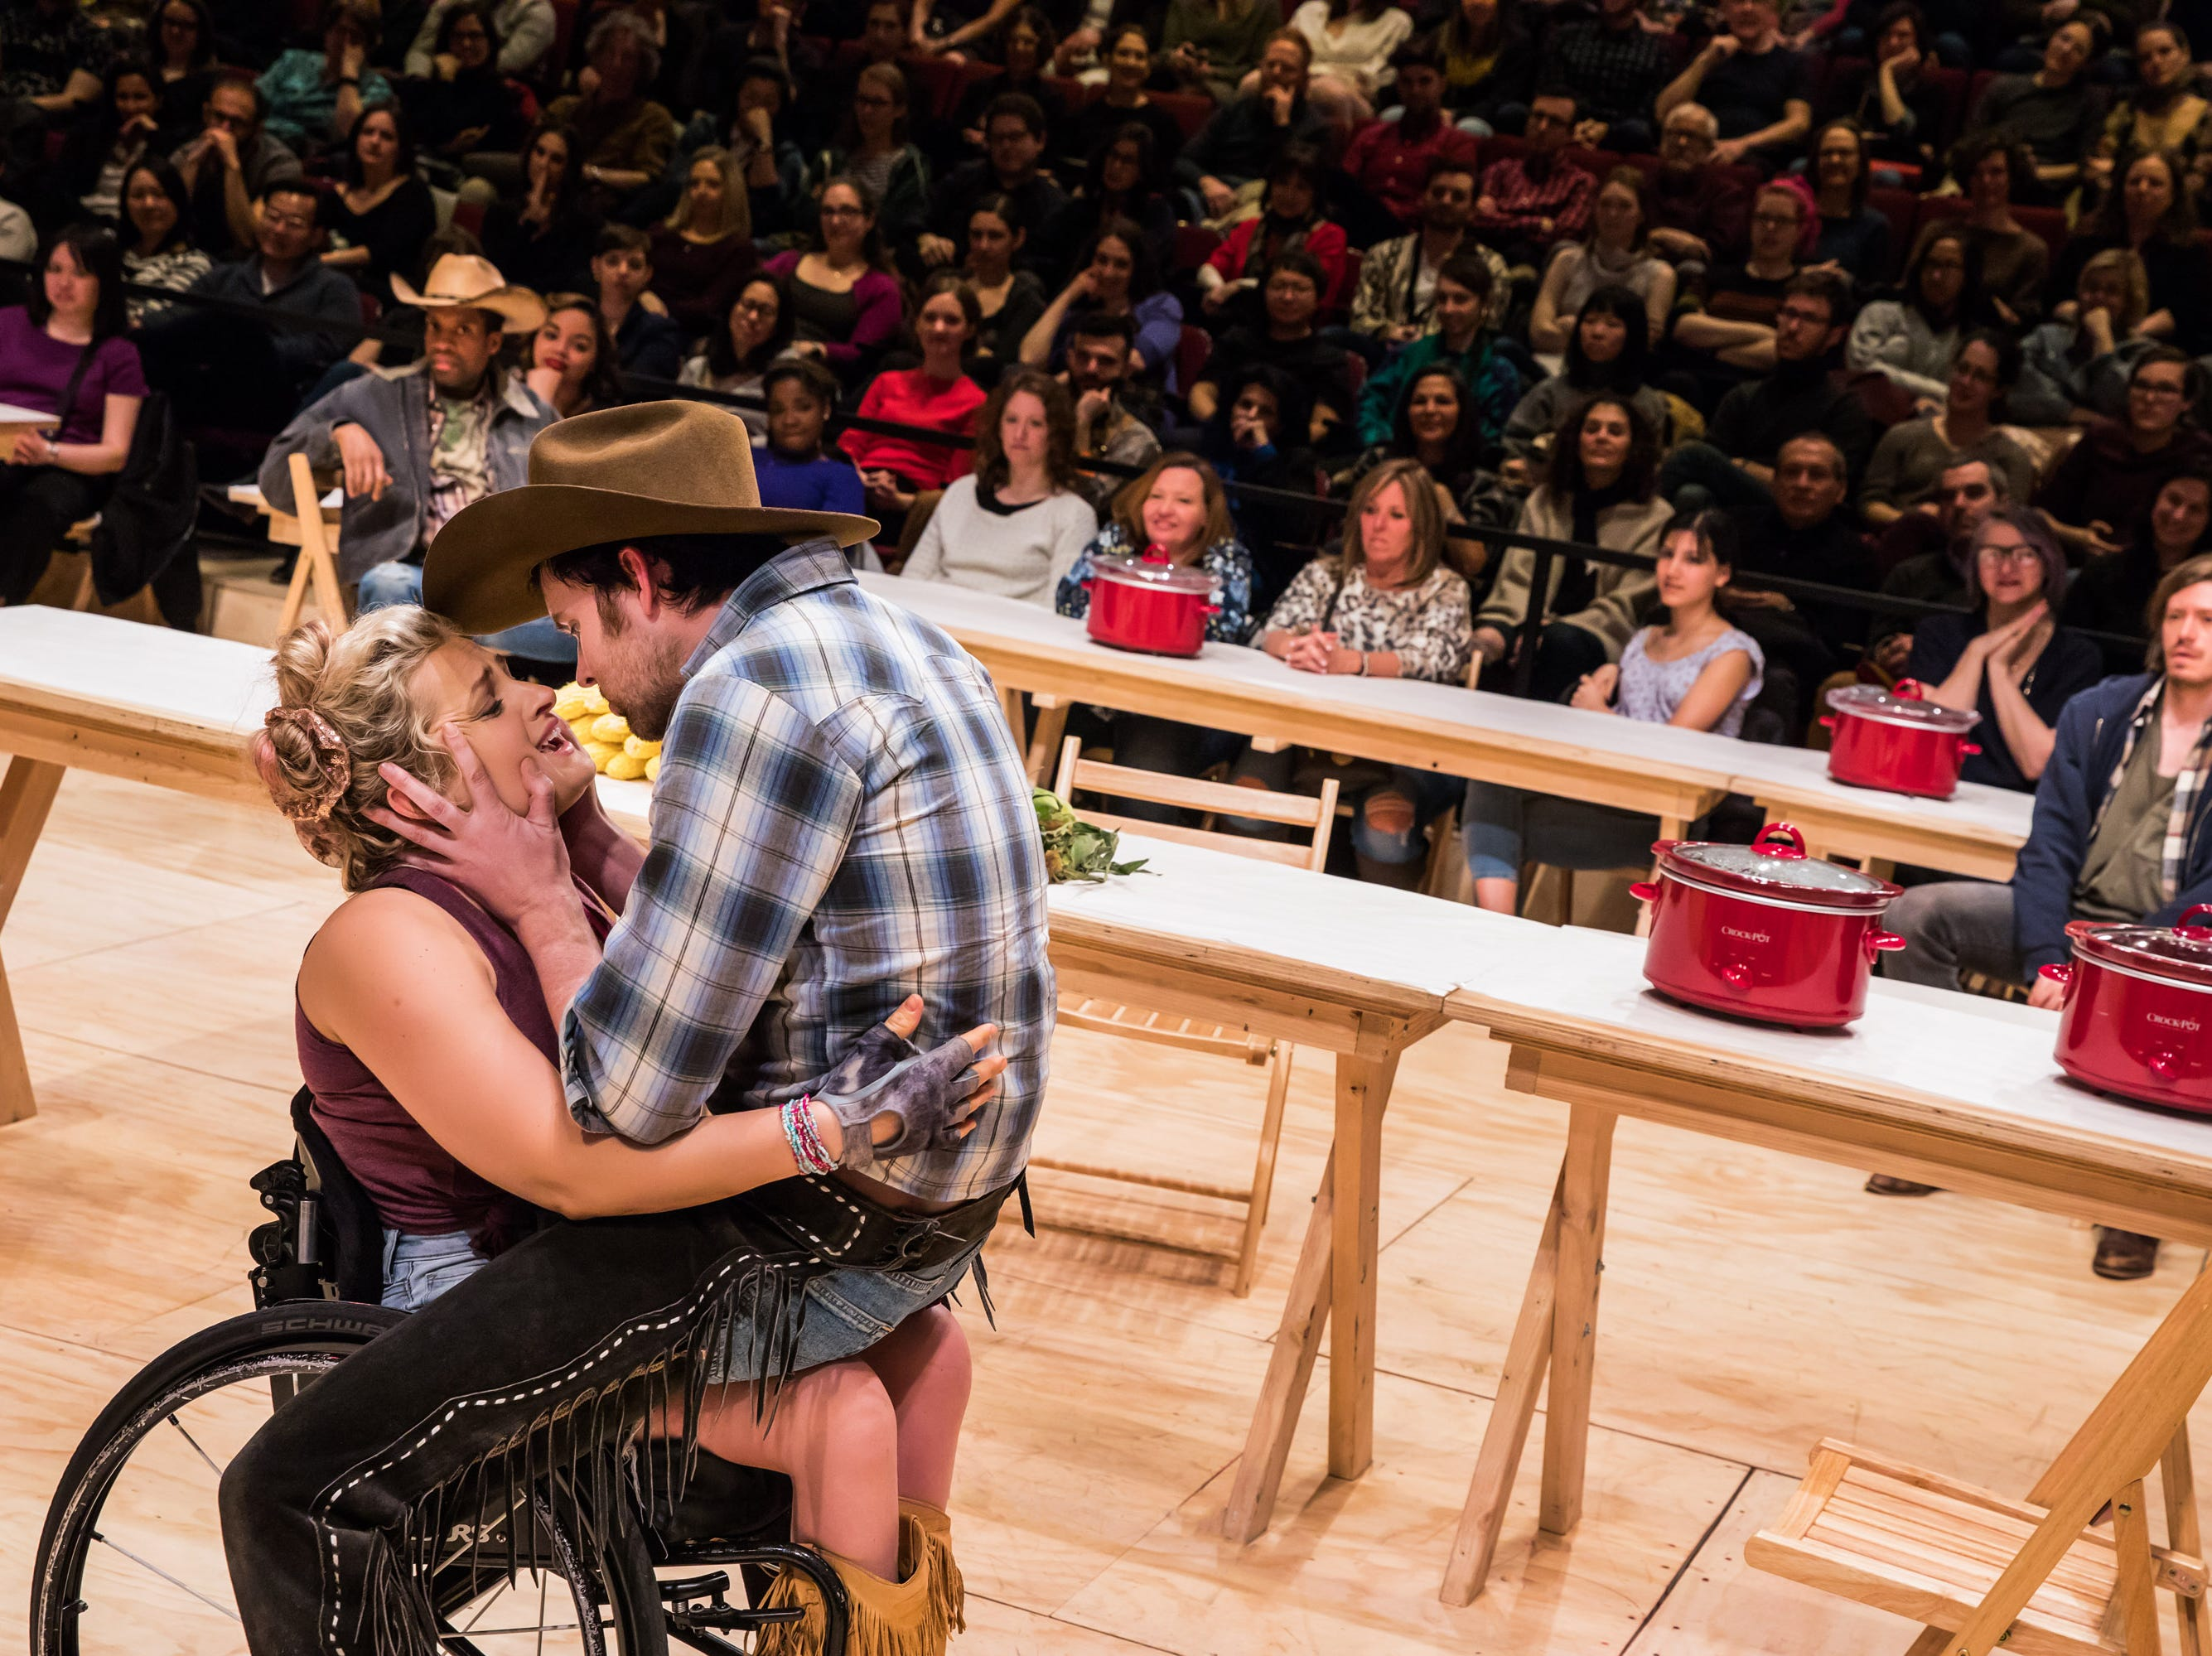 A new 'Oklahoma!' — by way of Tenafly — for a troubled time